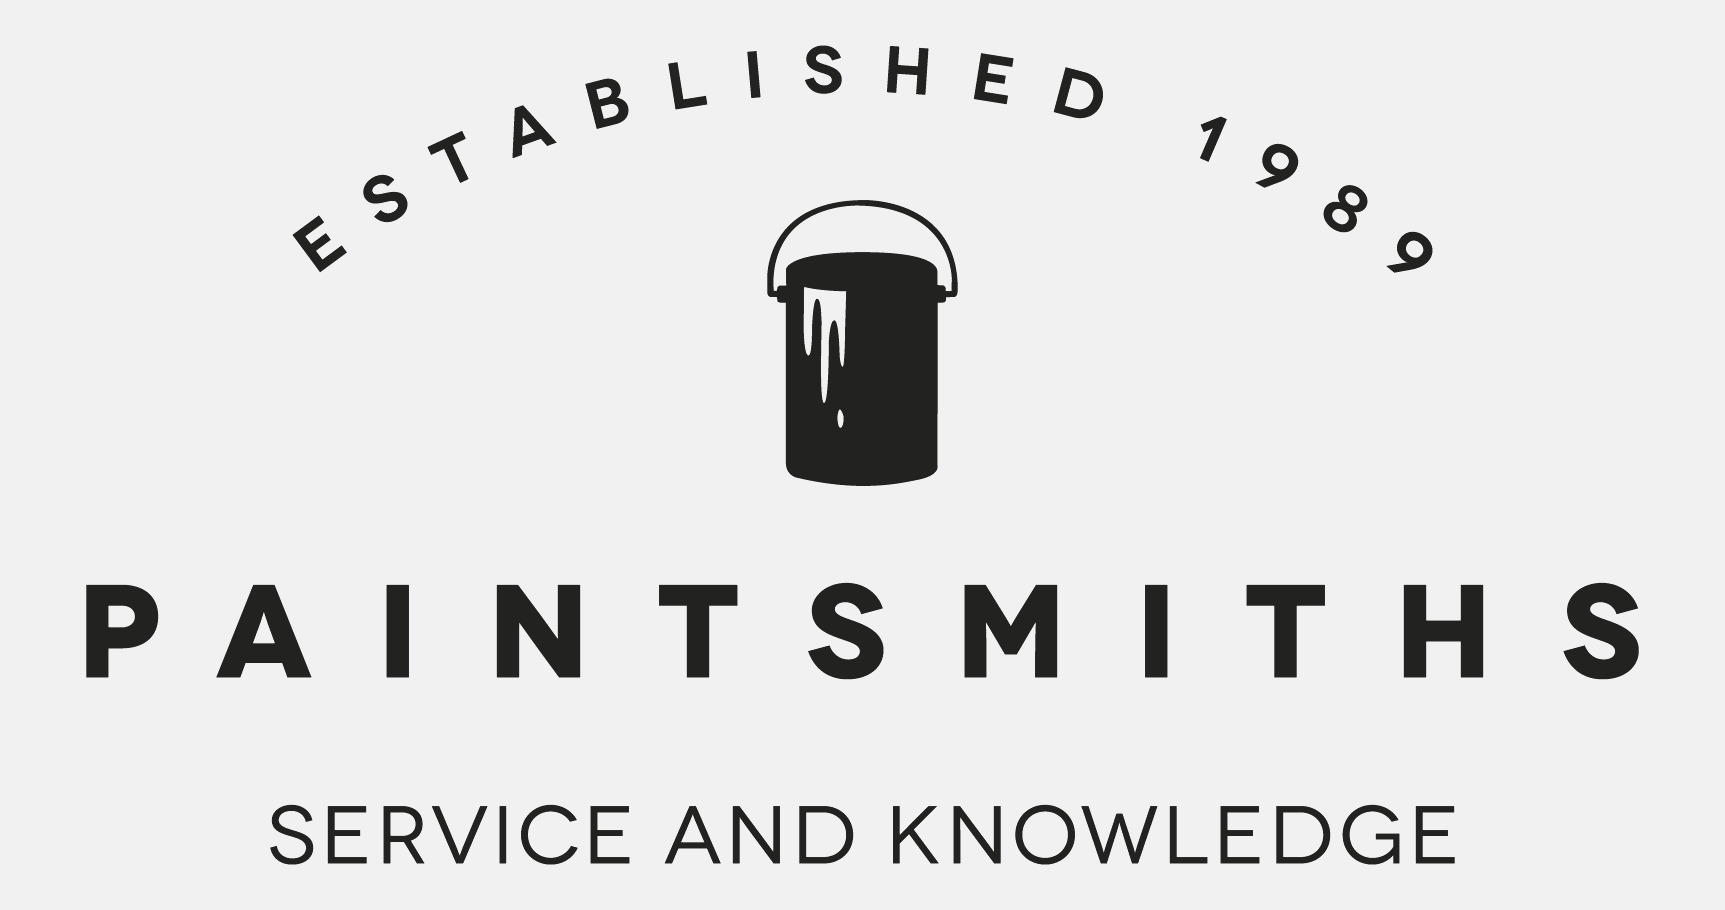 Paintsmiths Group